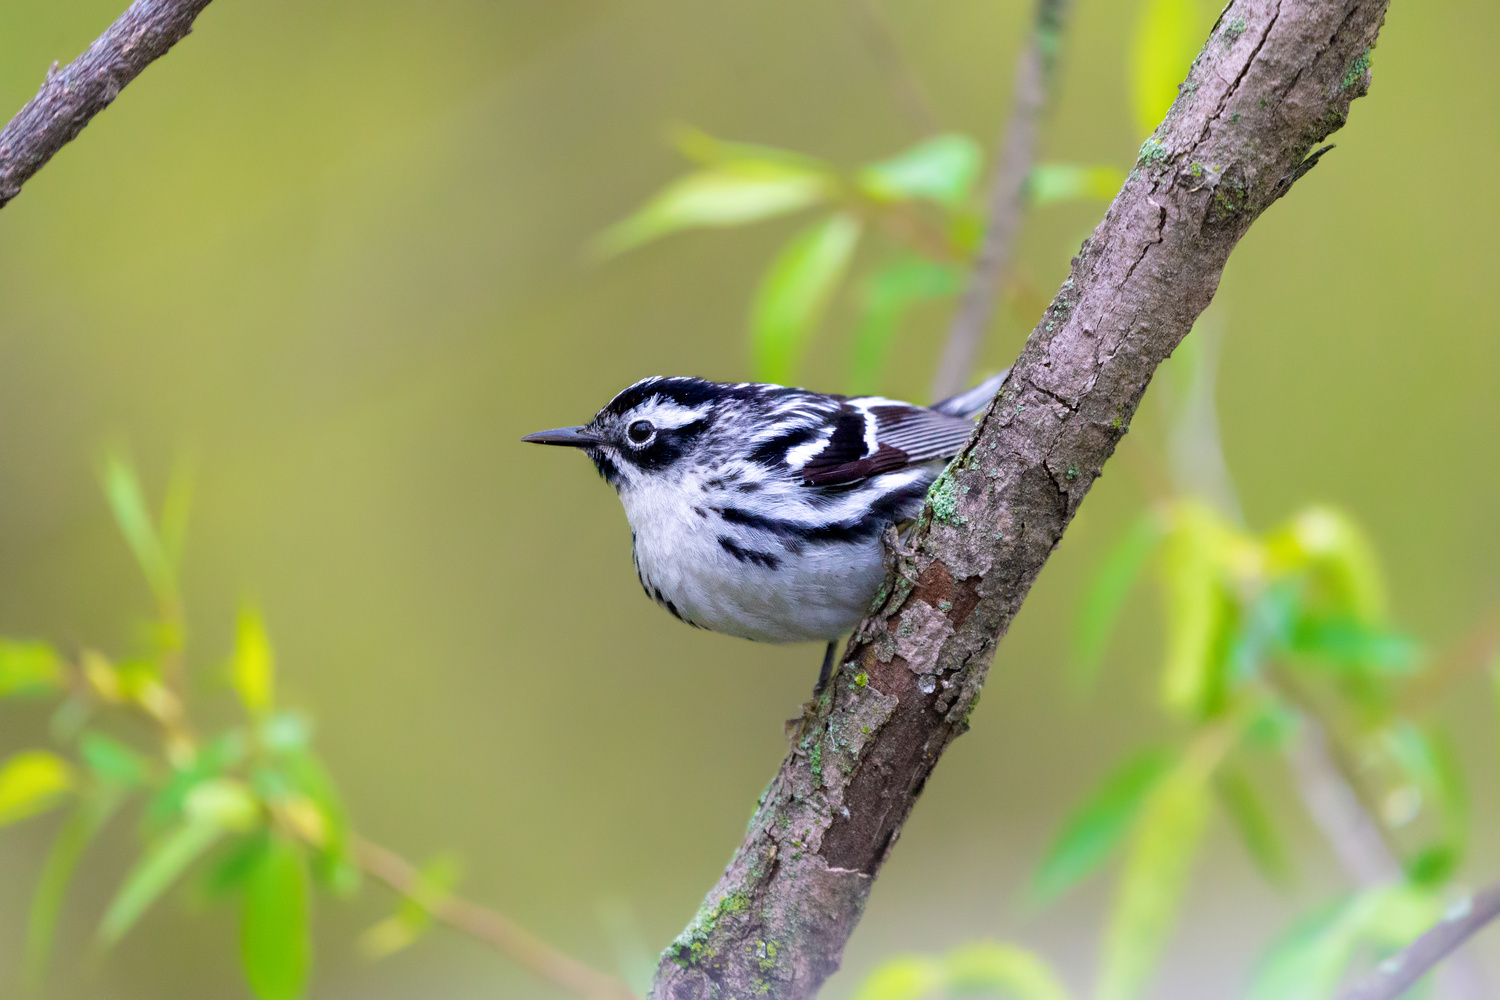 Black and White Warbler by Mariano de Miguel